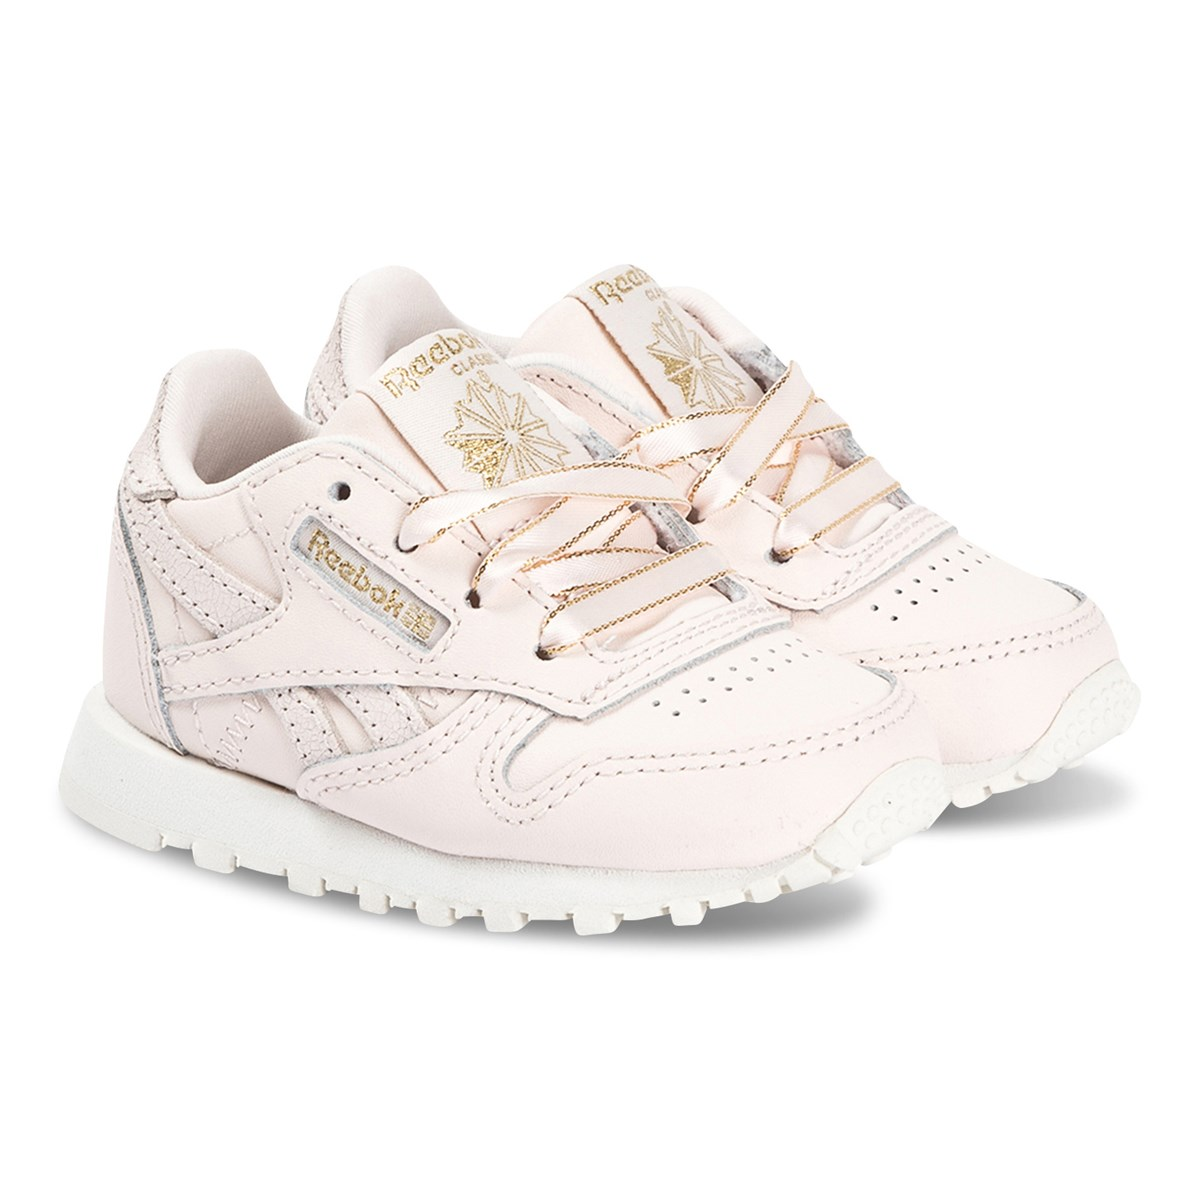 Reebok Classic Leather Pale Pink//White Leather Infant Trainers